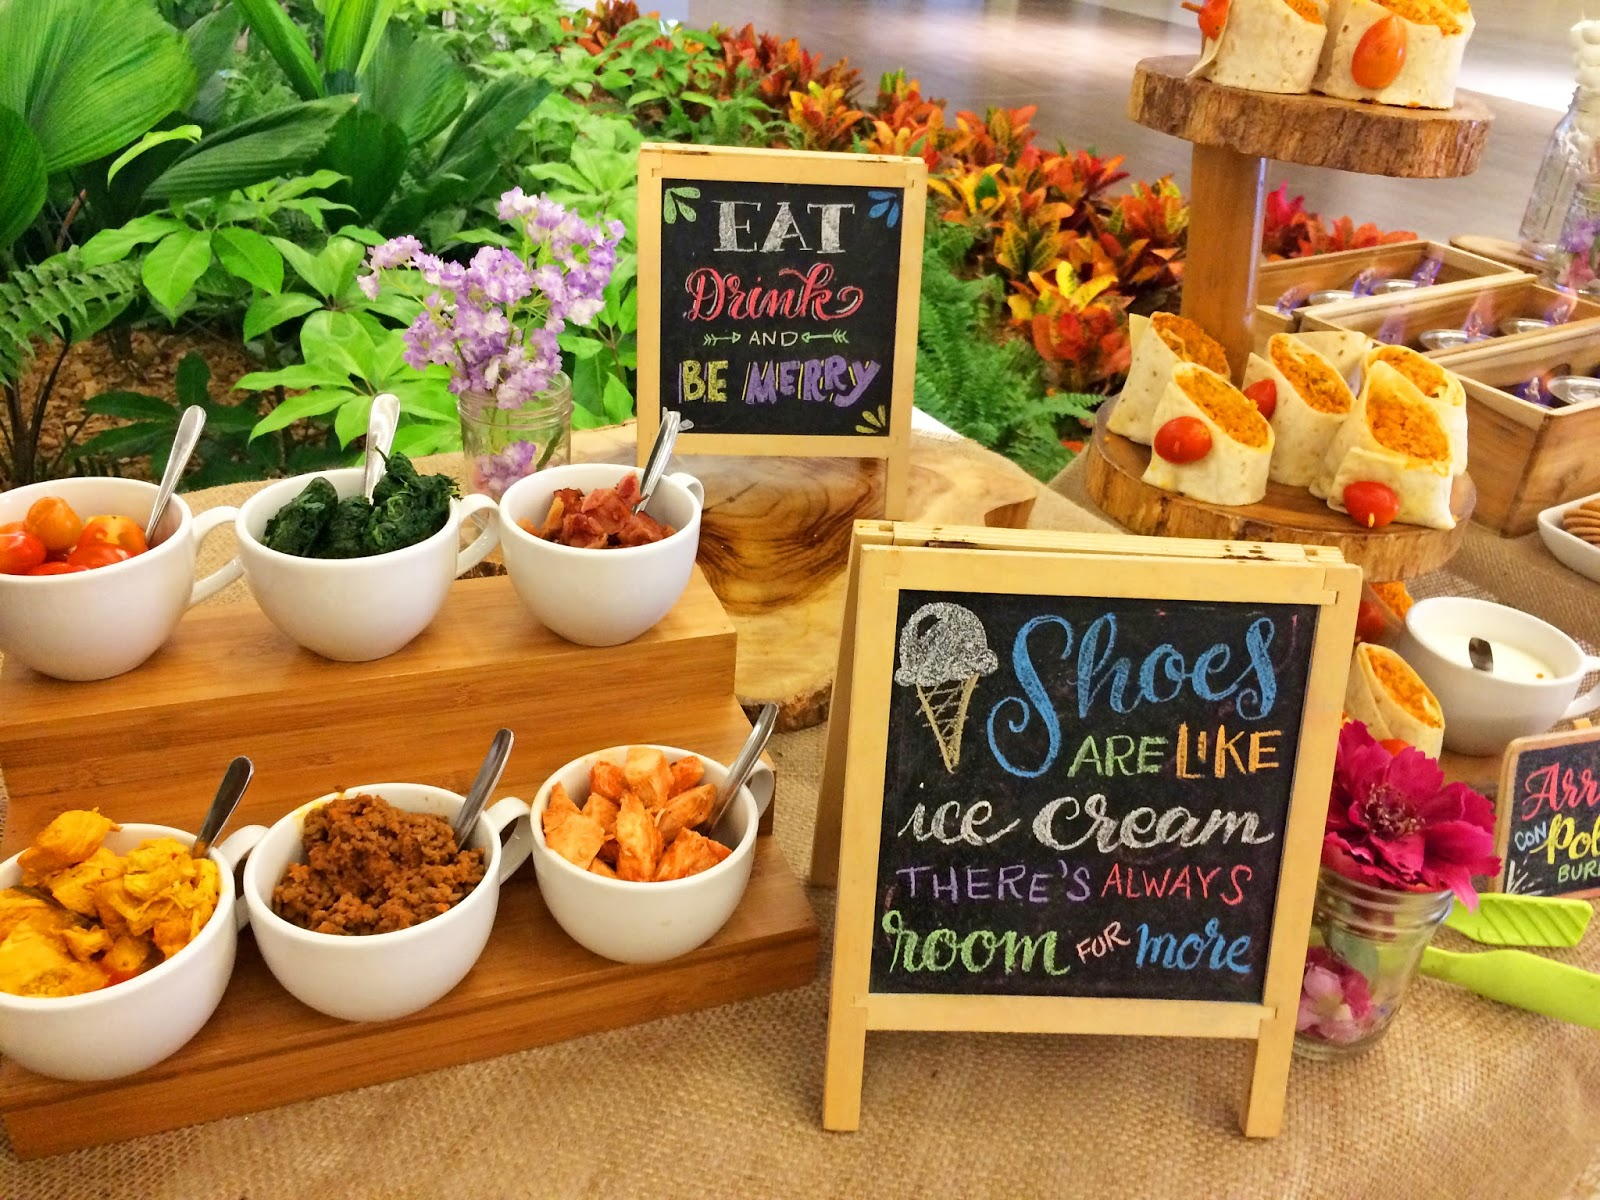 How cute is this party food?! Love the chalkboard signs!